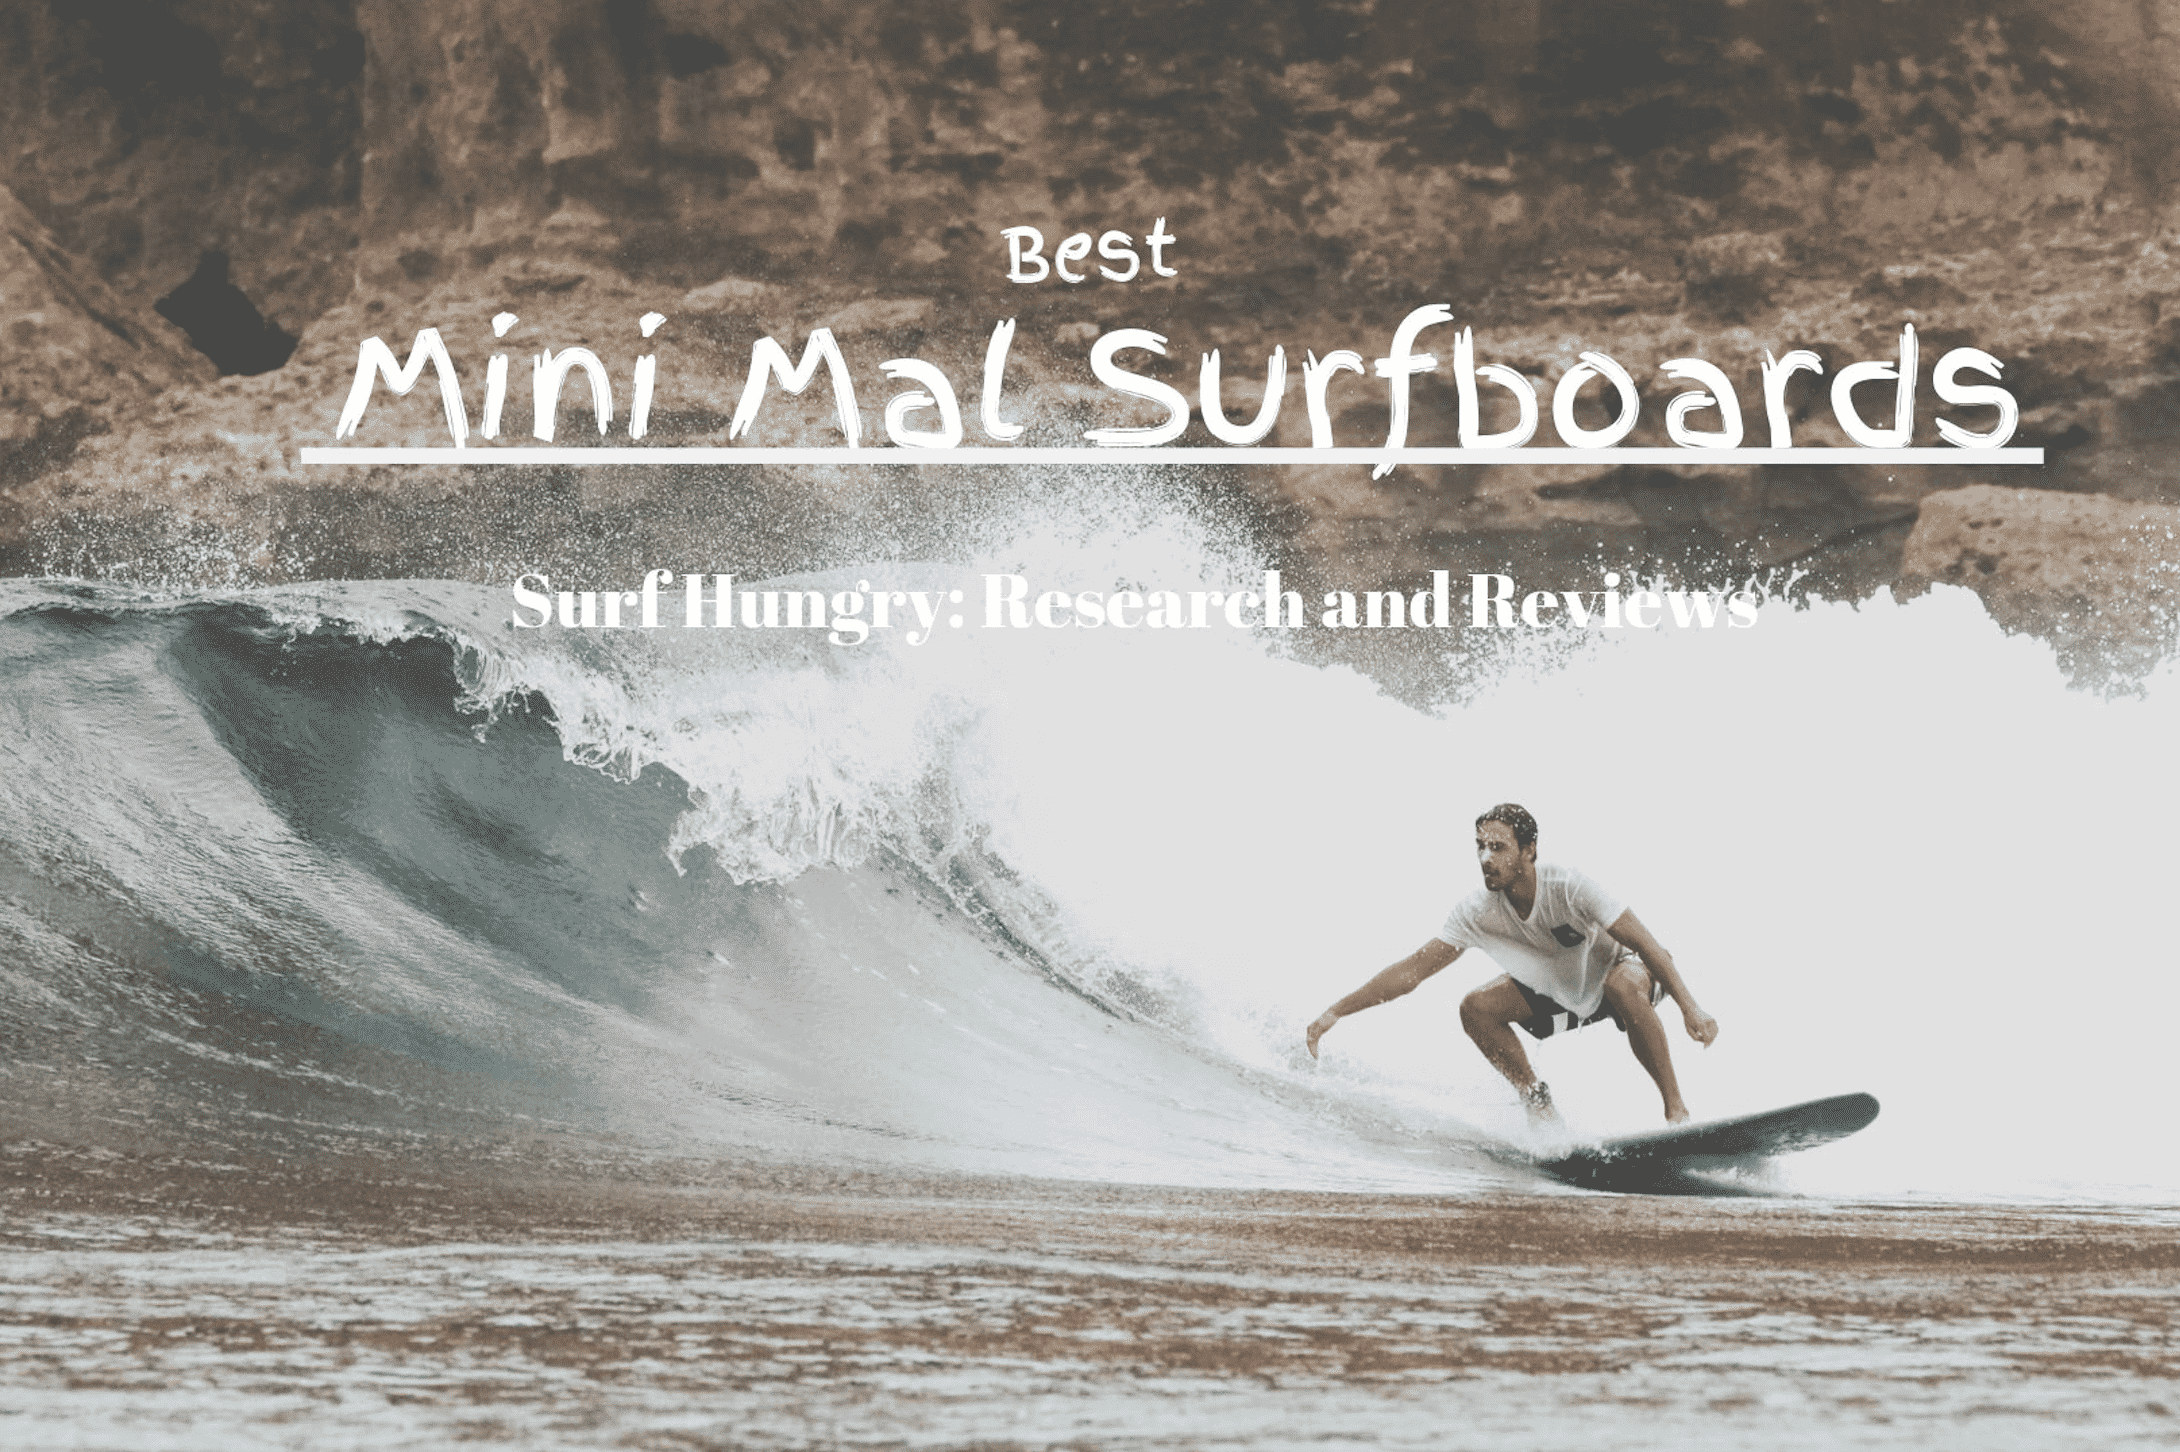 best mini mal surfboards